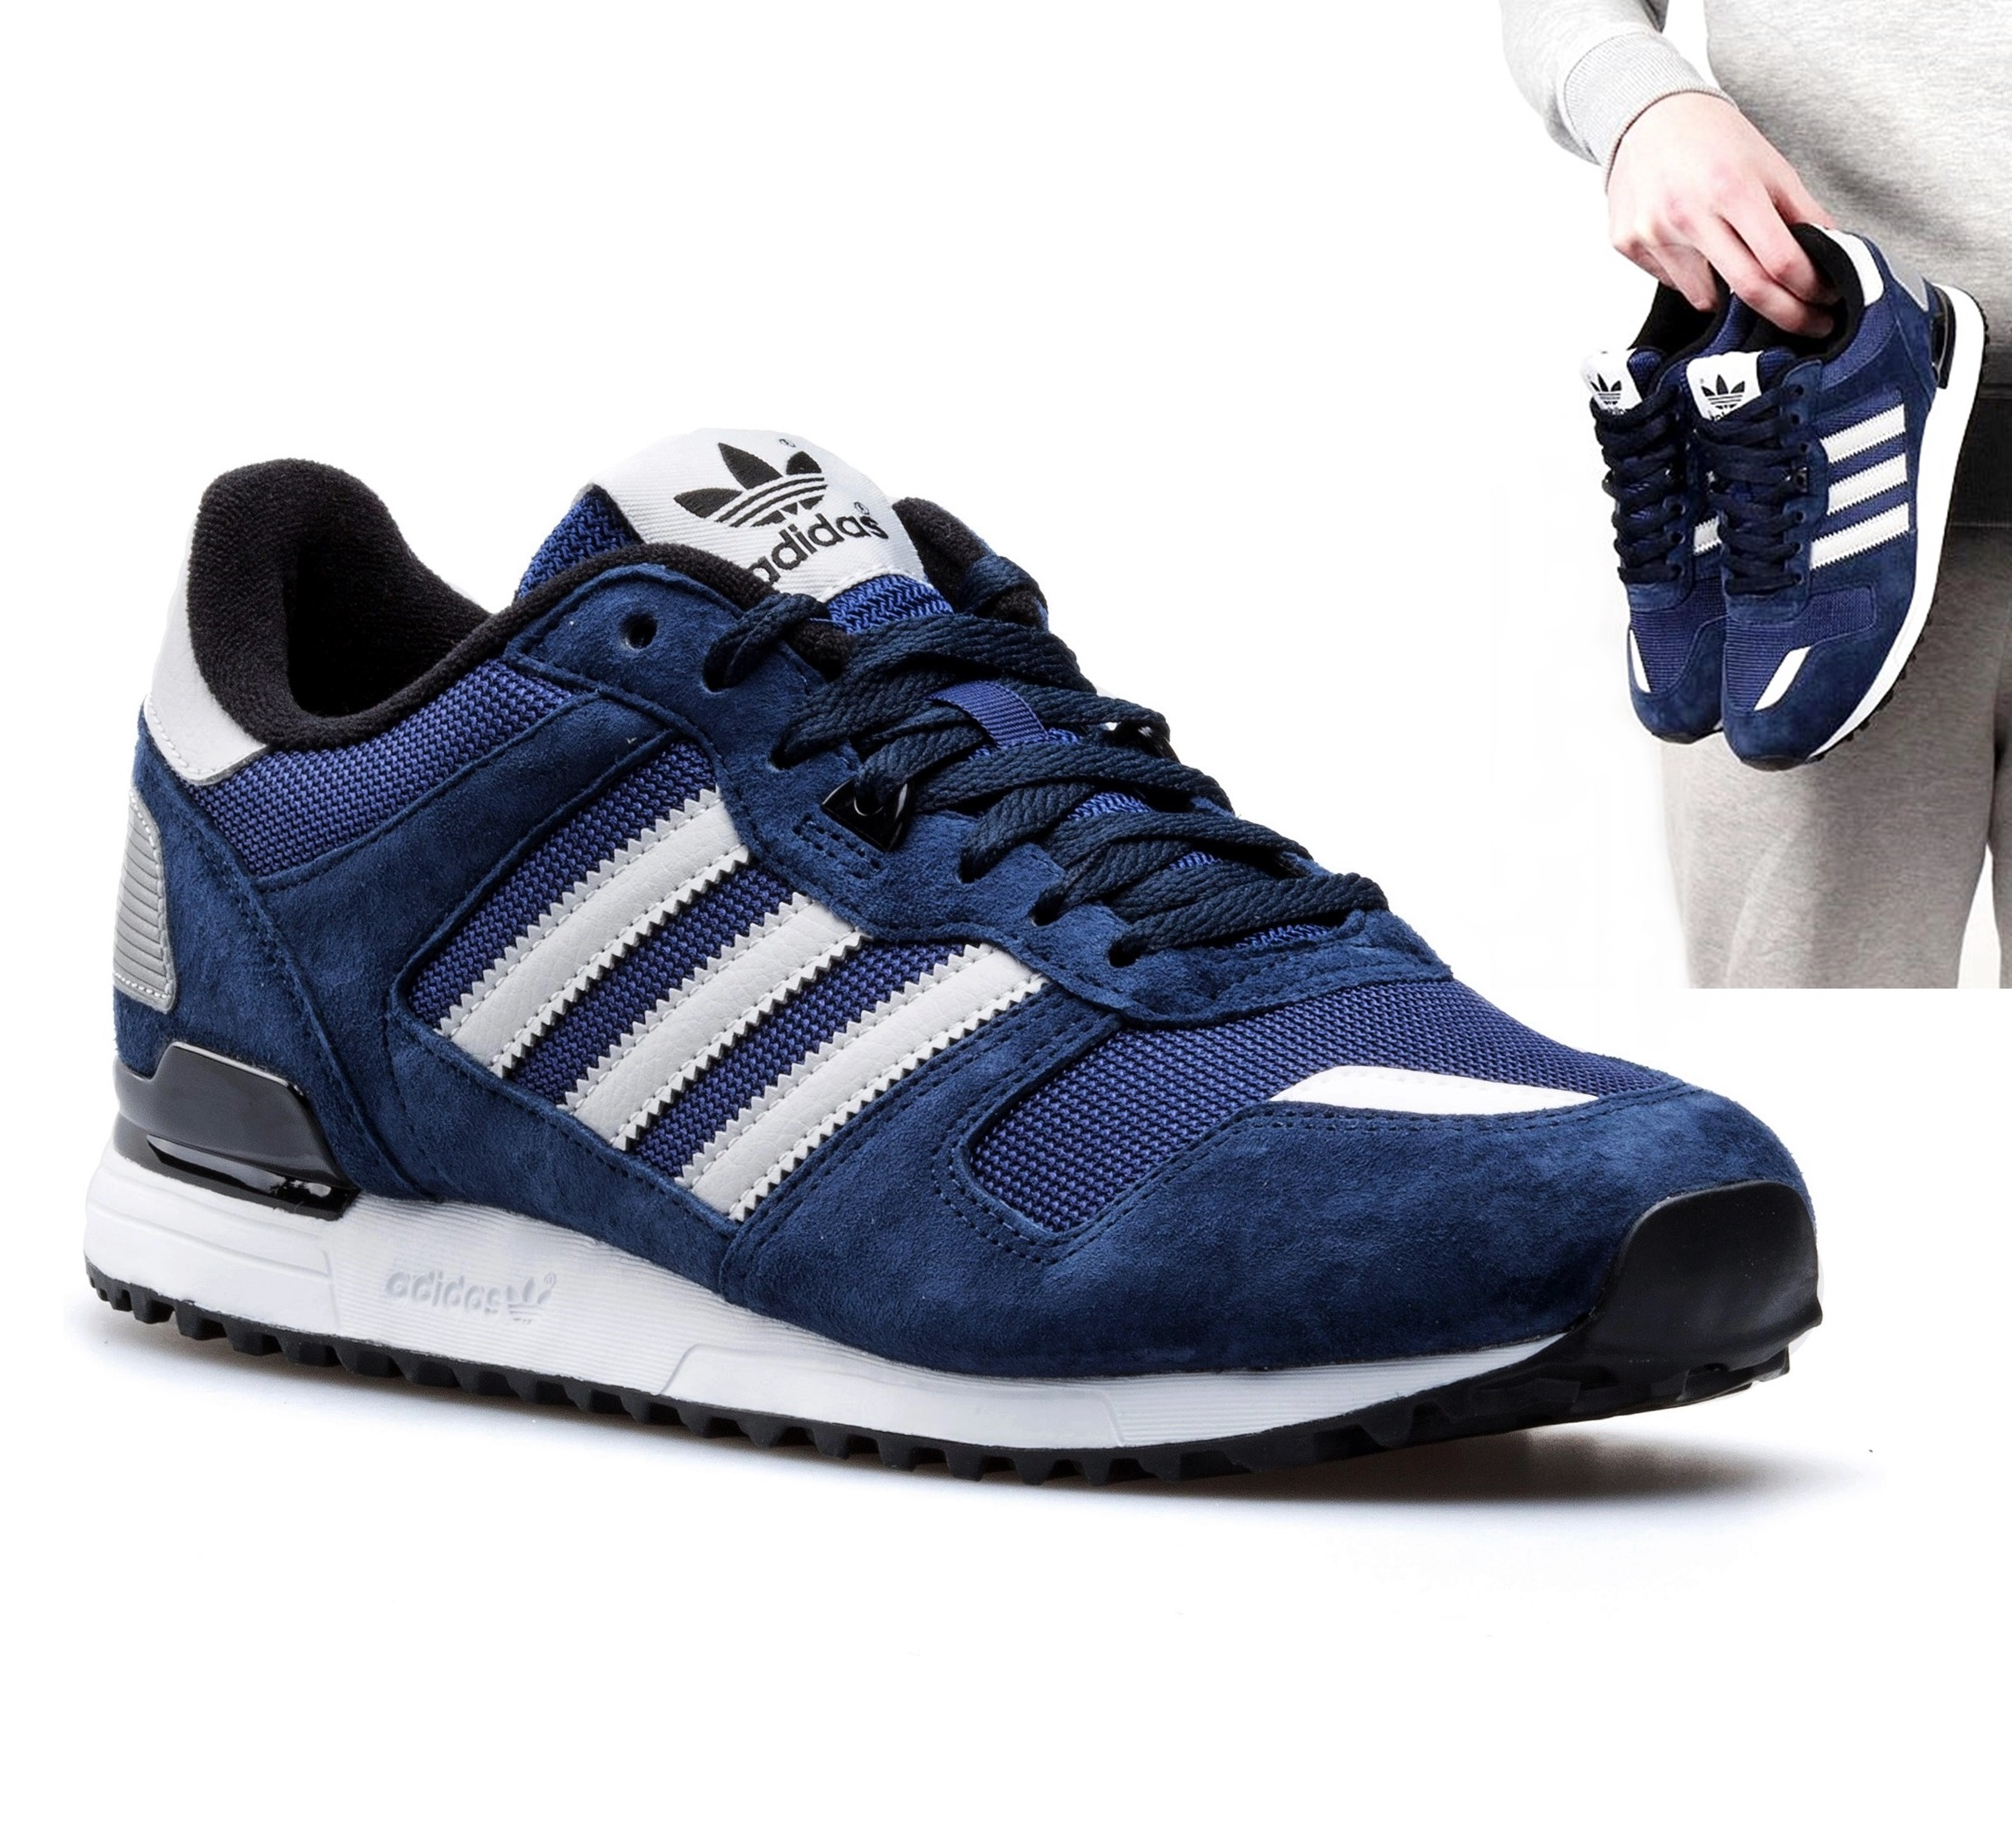 reputable site 2c8b6 0c55d ... wholesale buty adidas zx 700 s79182 sneakersy iga 36 2 3 3c10f 273f3